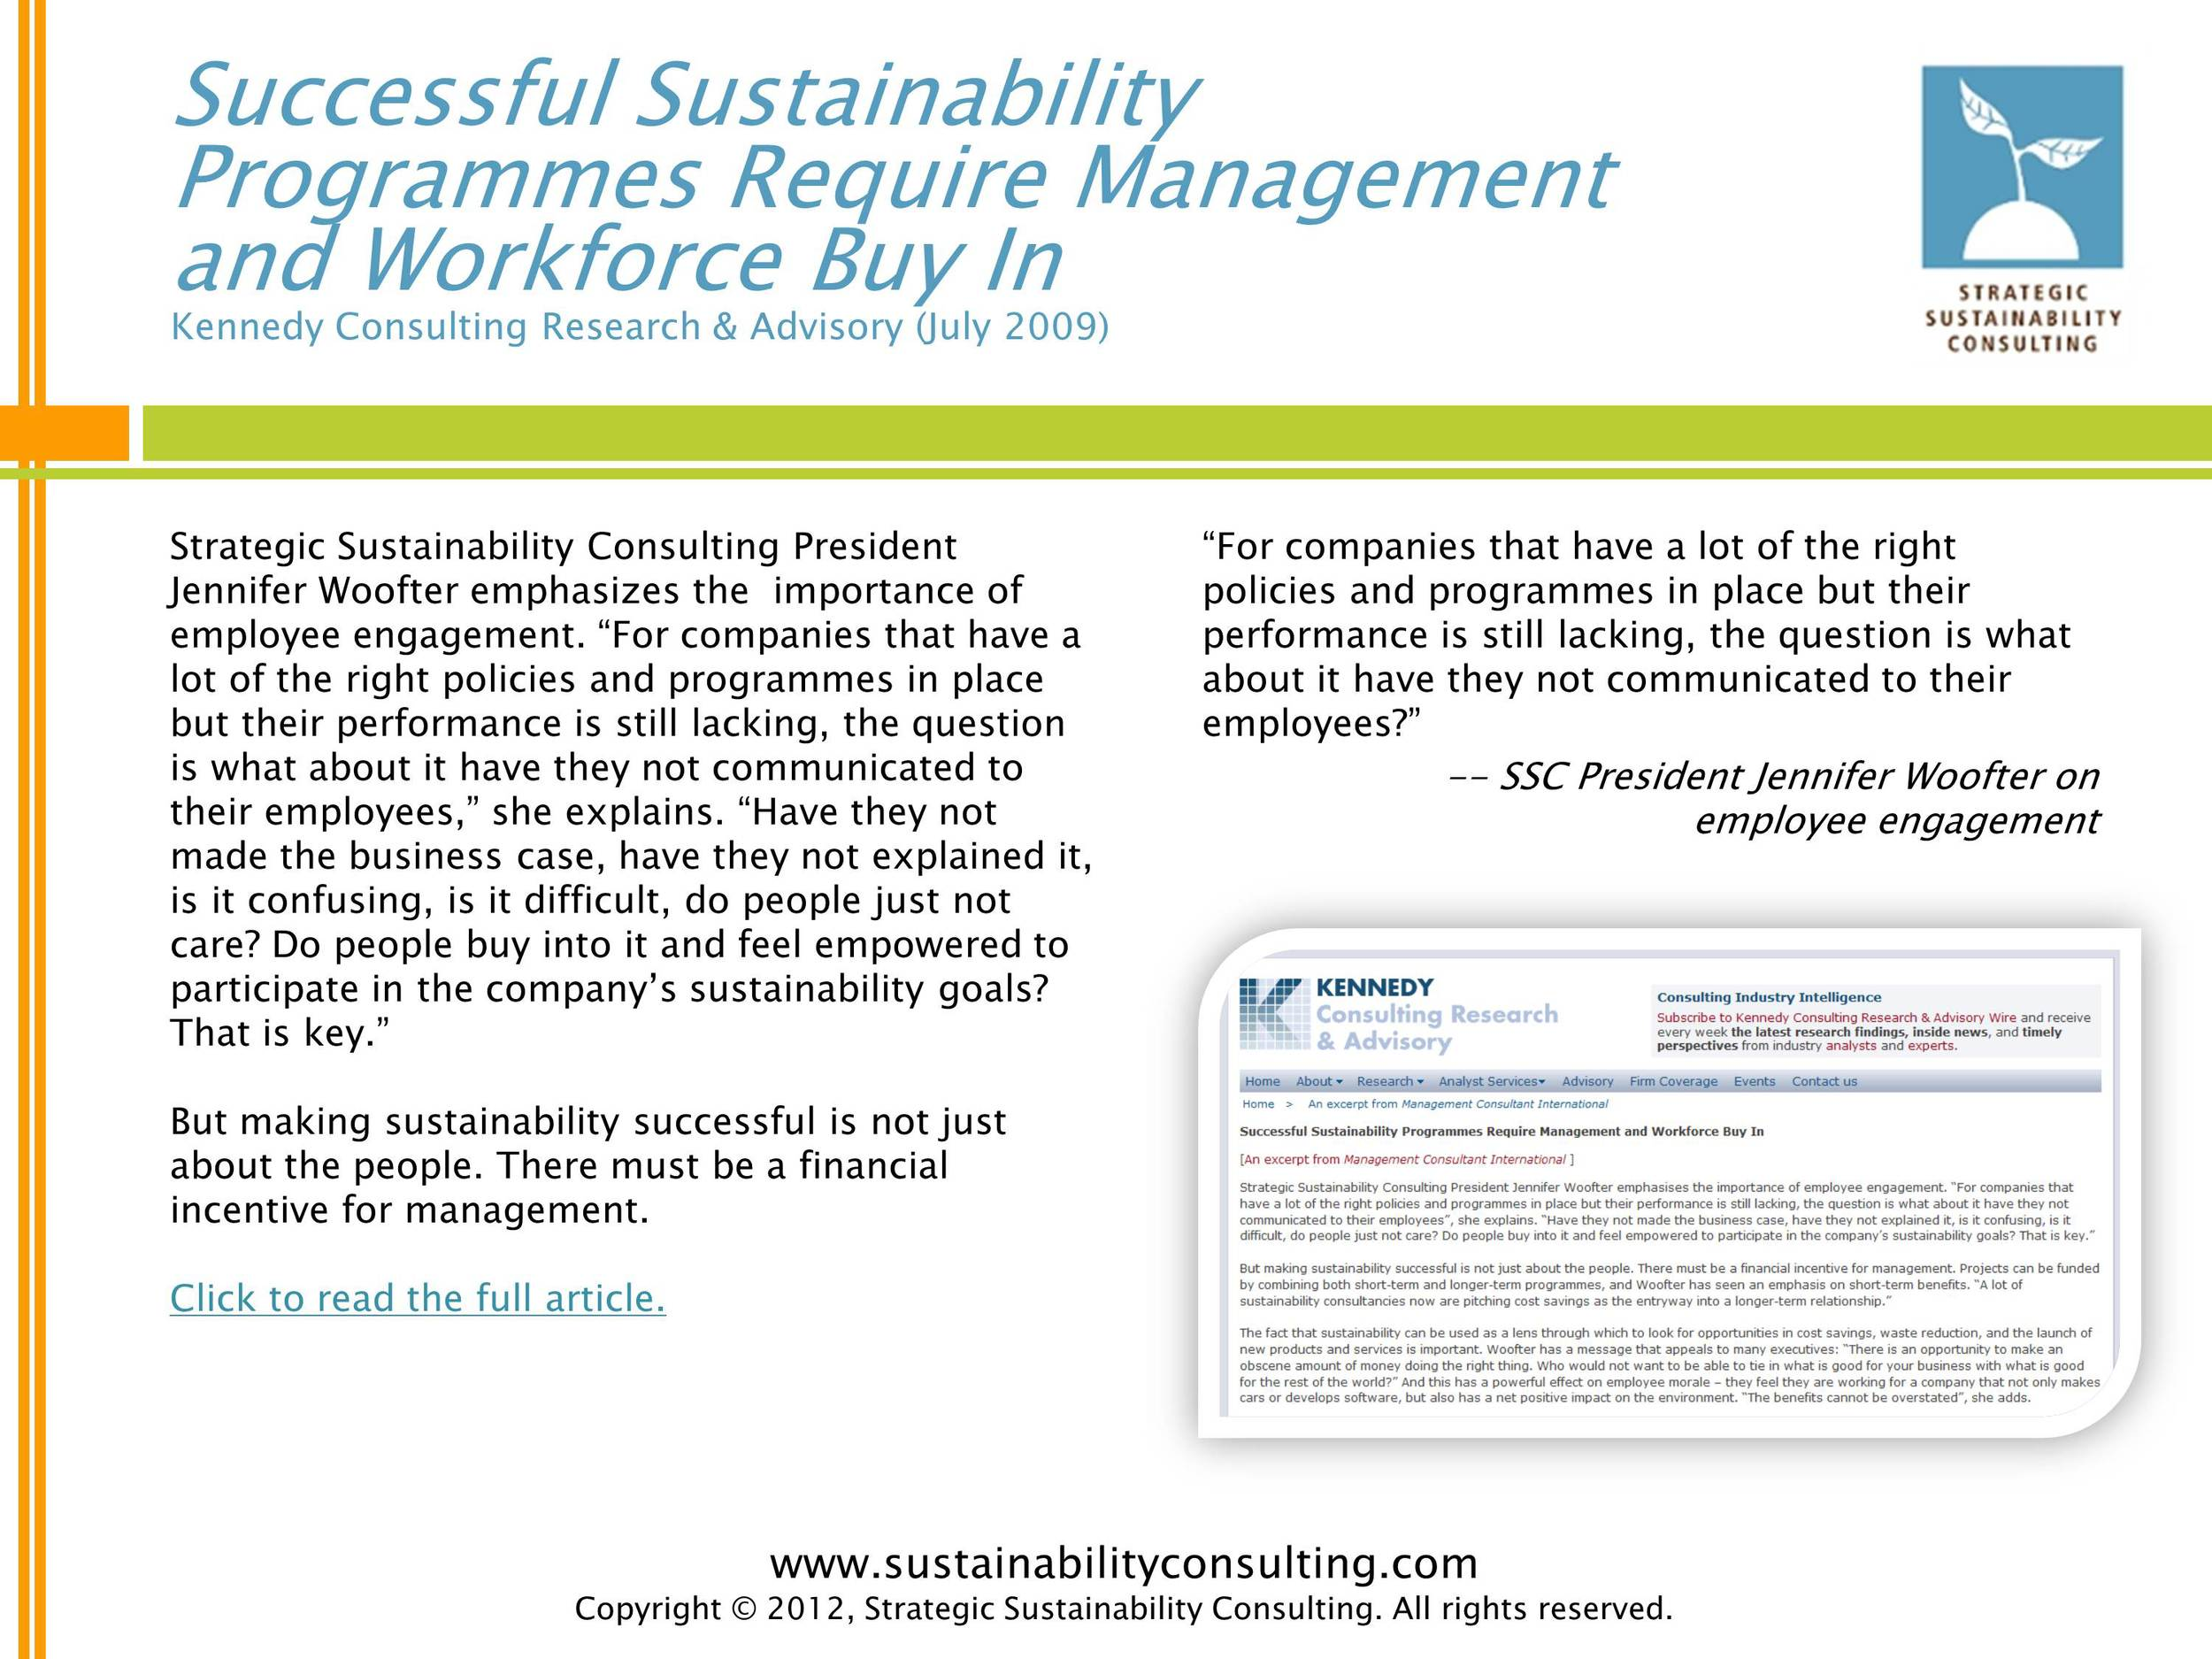 Successful Sustainability Programmes Require Management and Workforce to Buy In